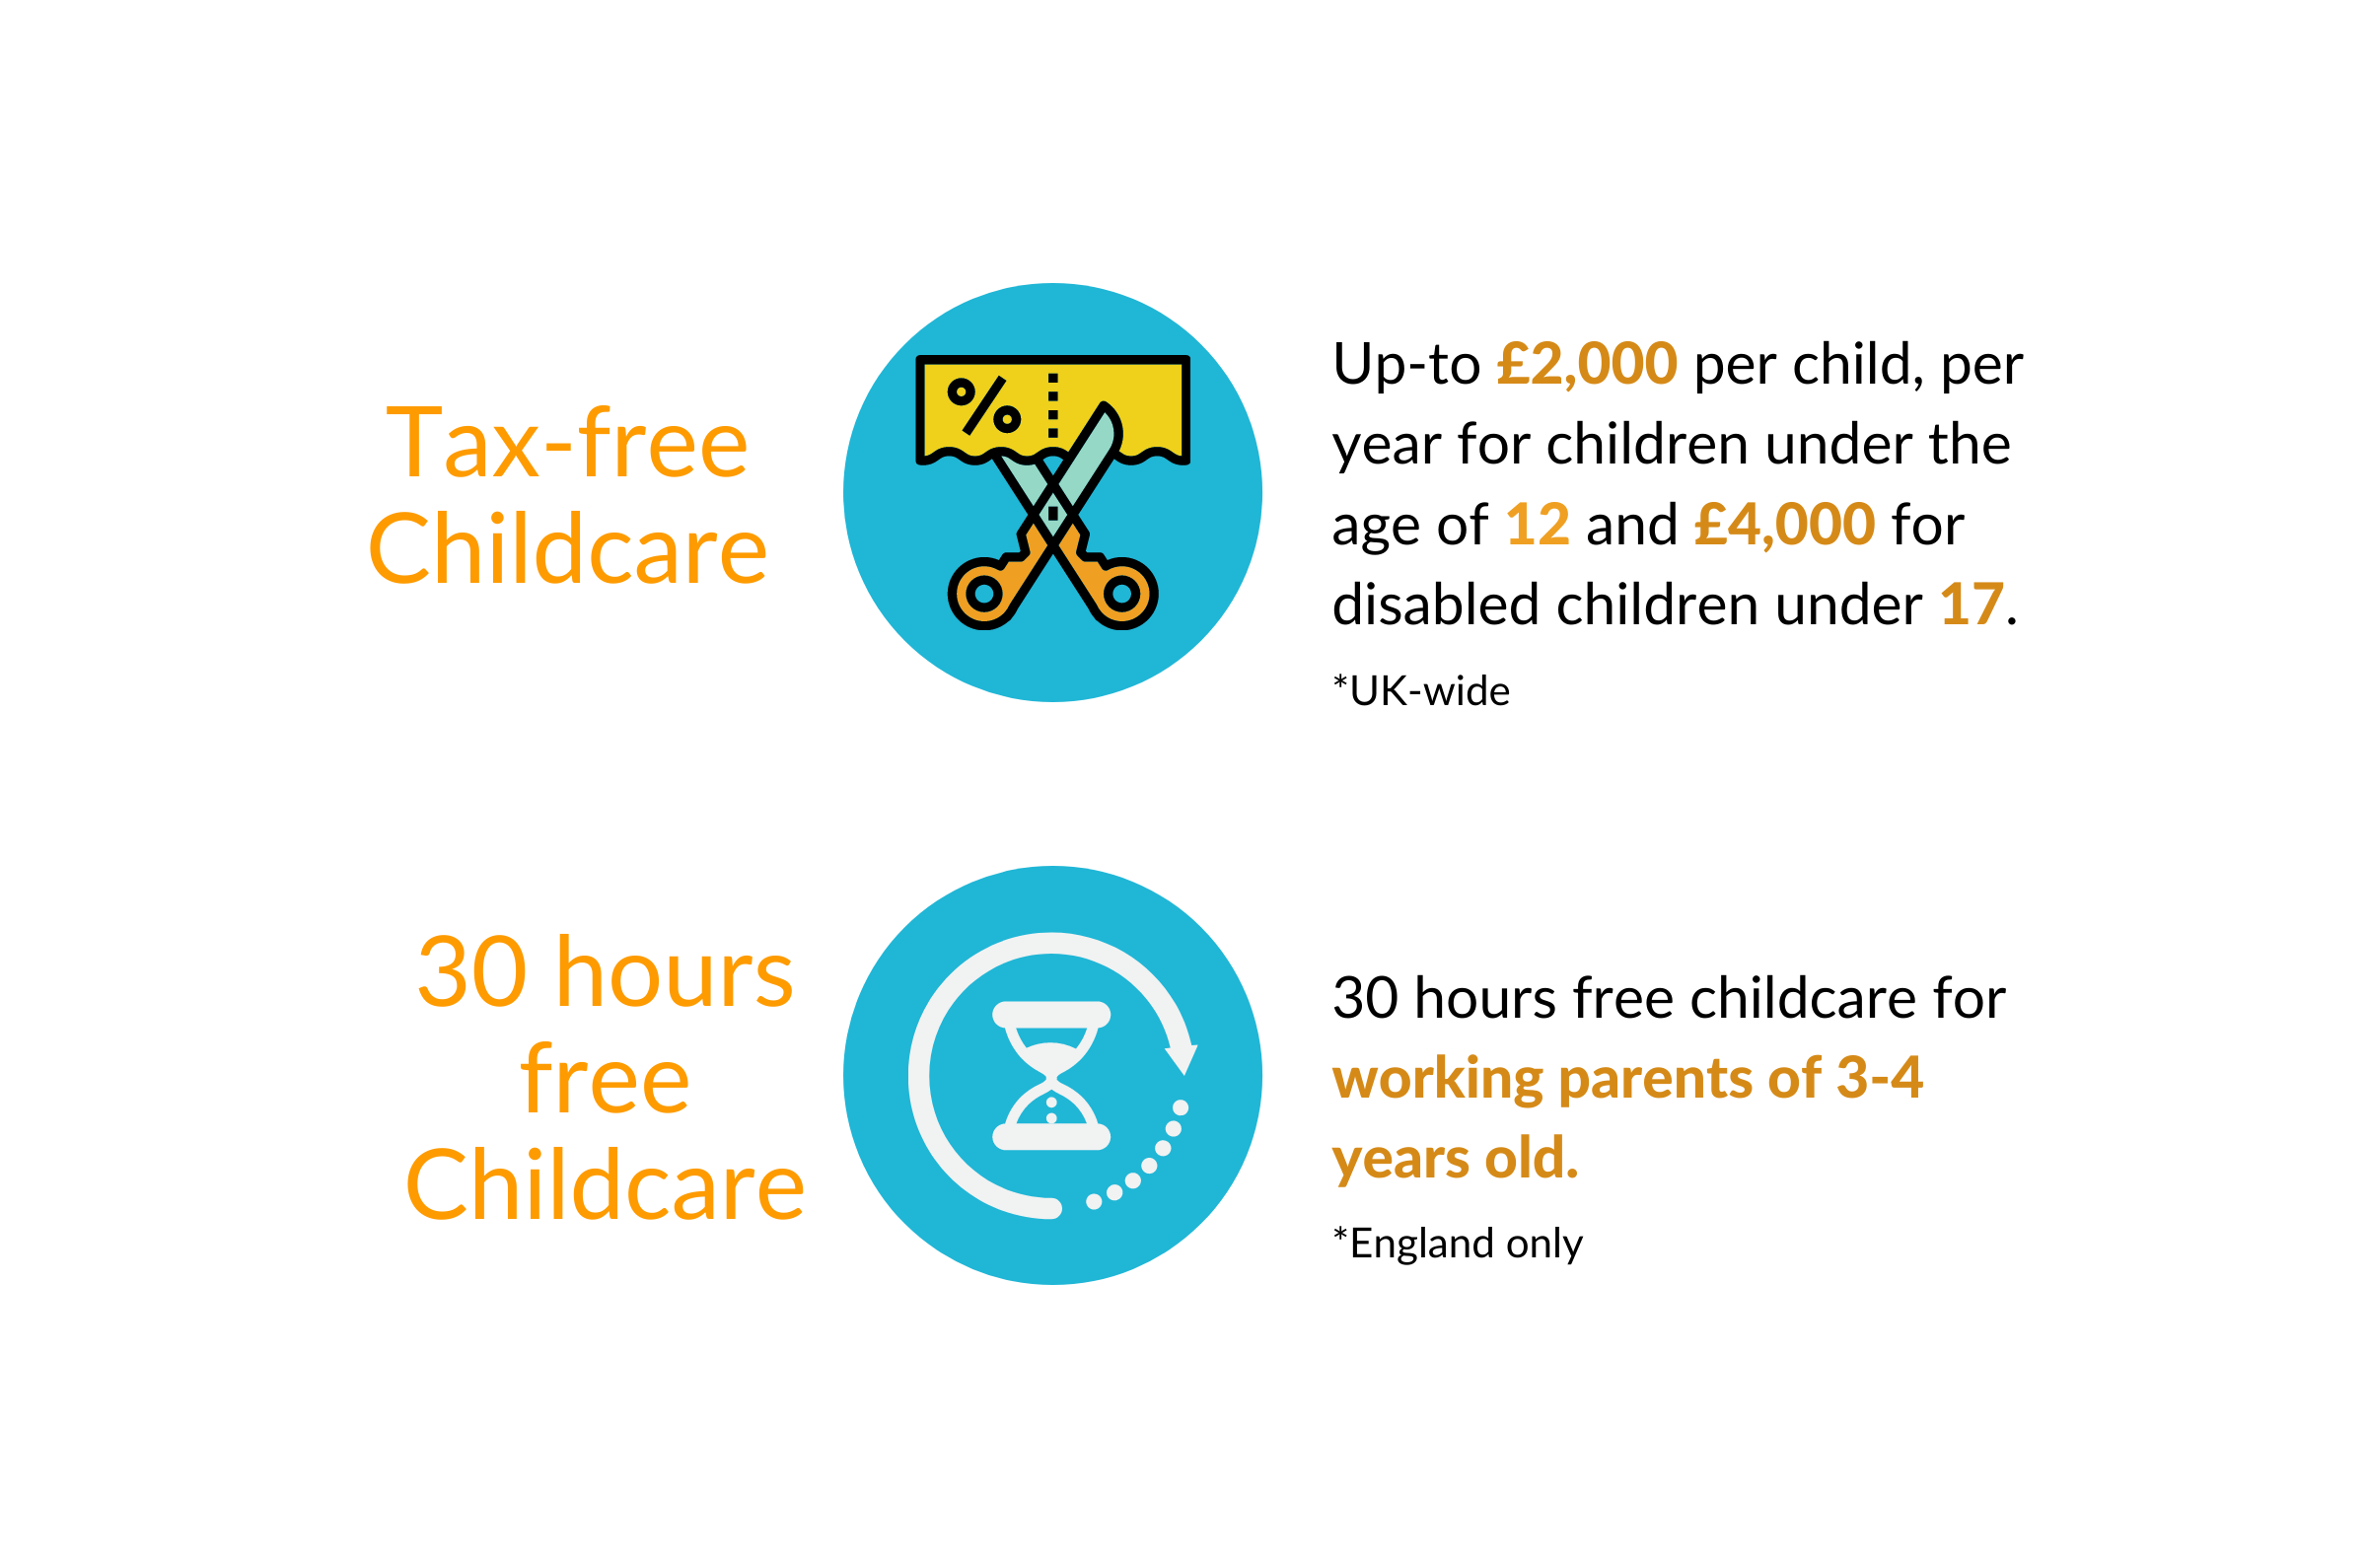 The rules for tax-free childcare